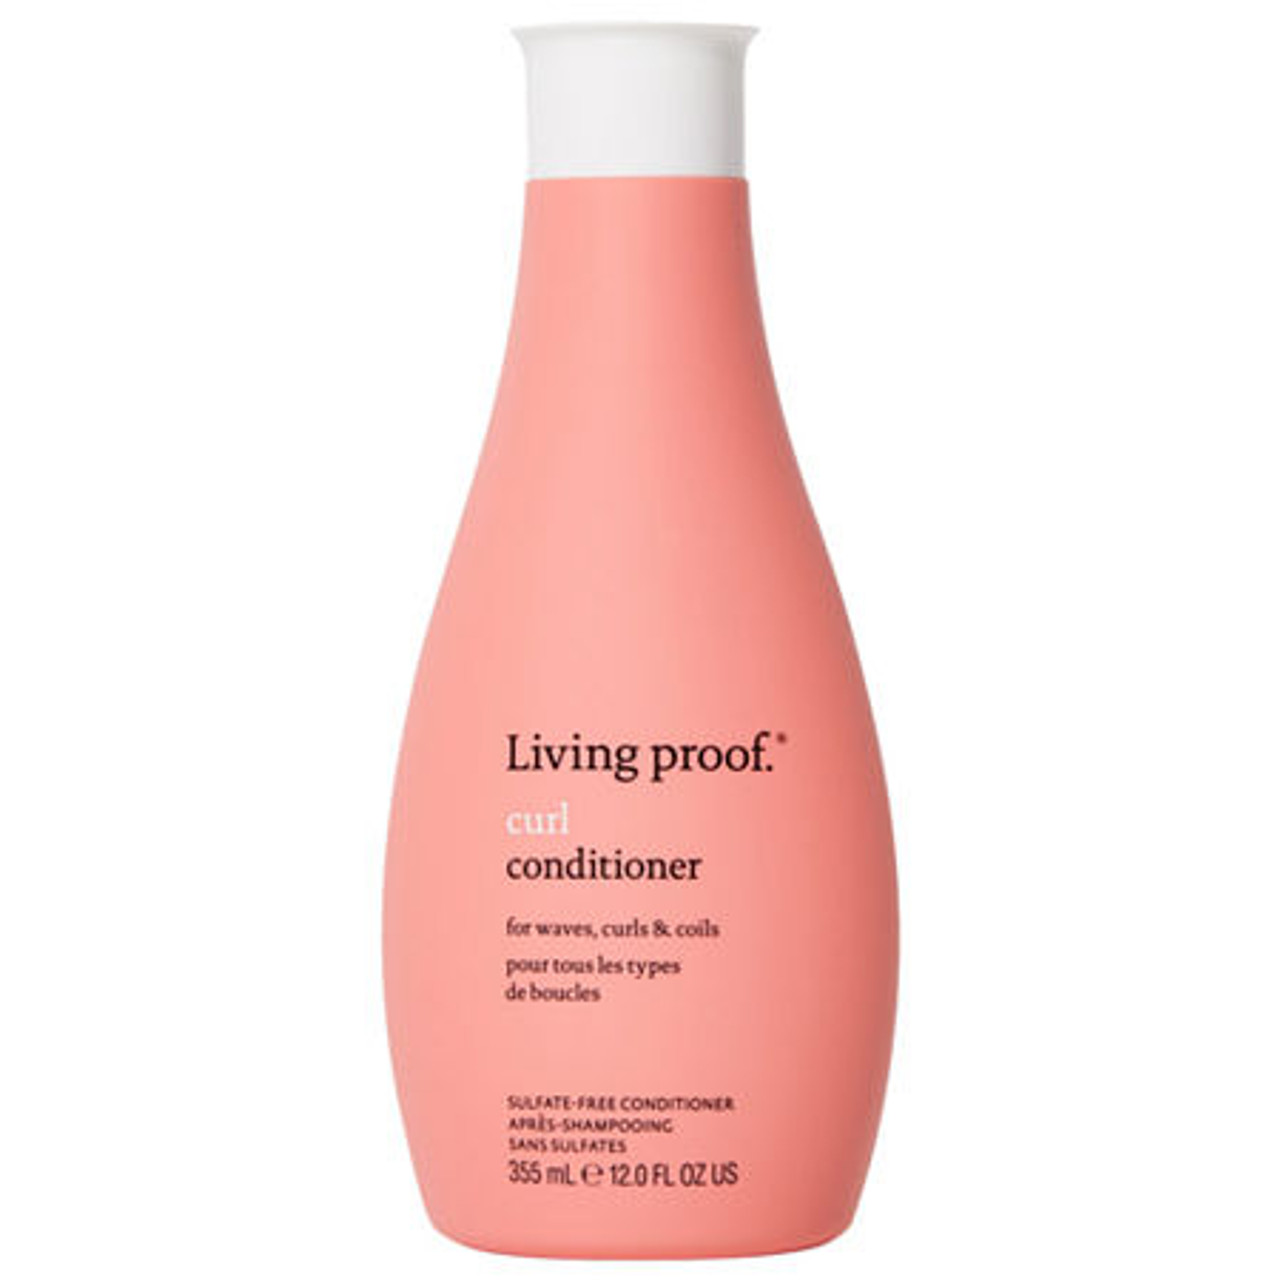 Living Proof Curl Conditioner, Size 12 Oz